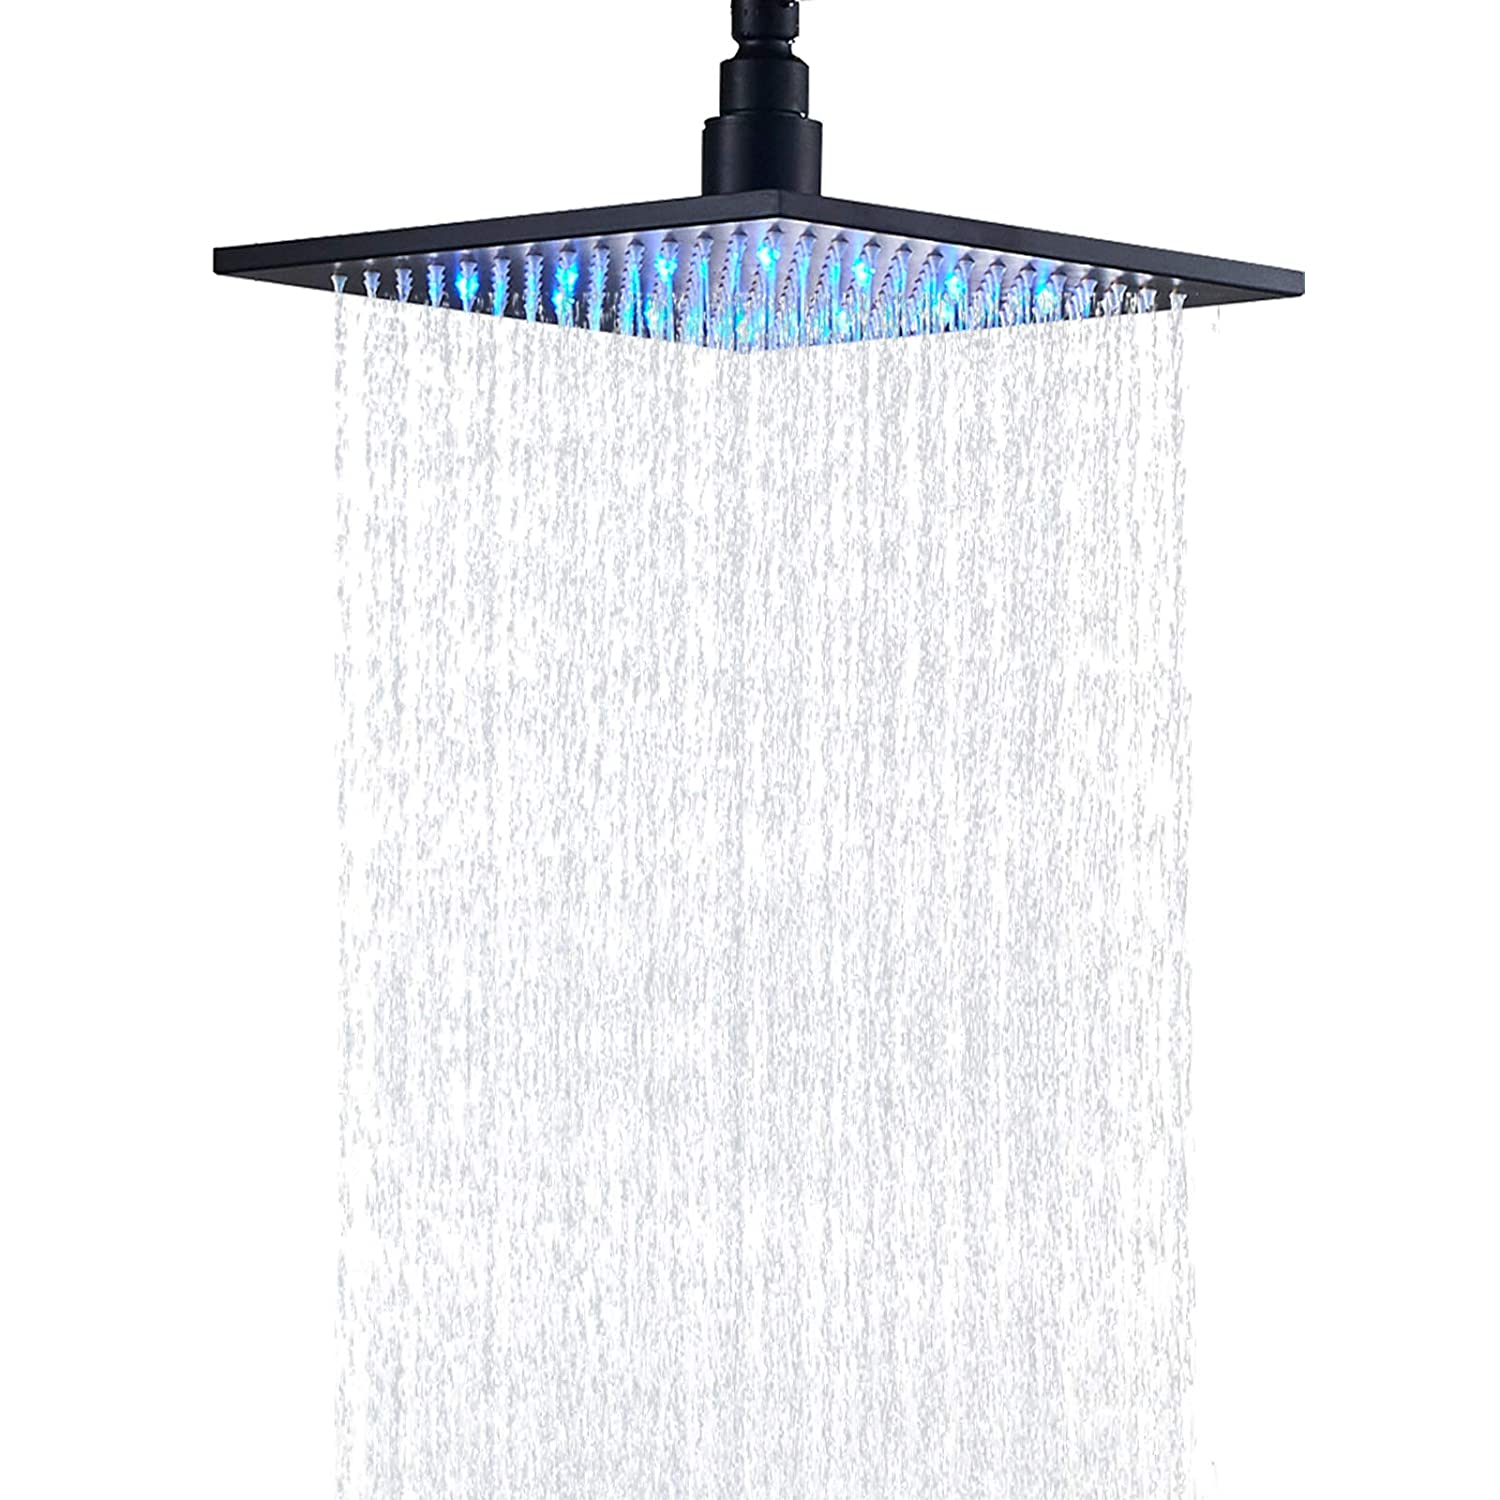 Senlesen Bathroom 10-inch Square Shower Head with LED Light Oil Rubbed Bronze